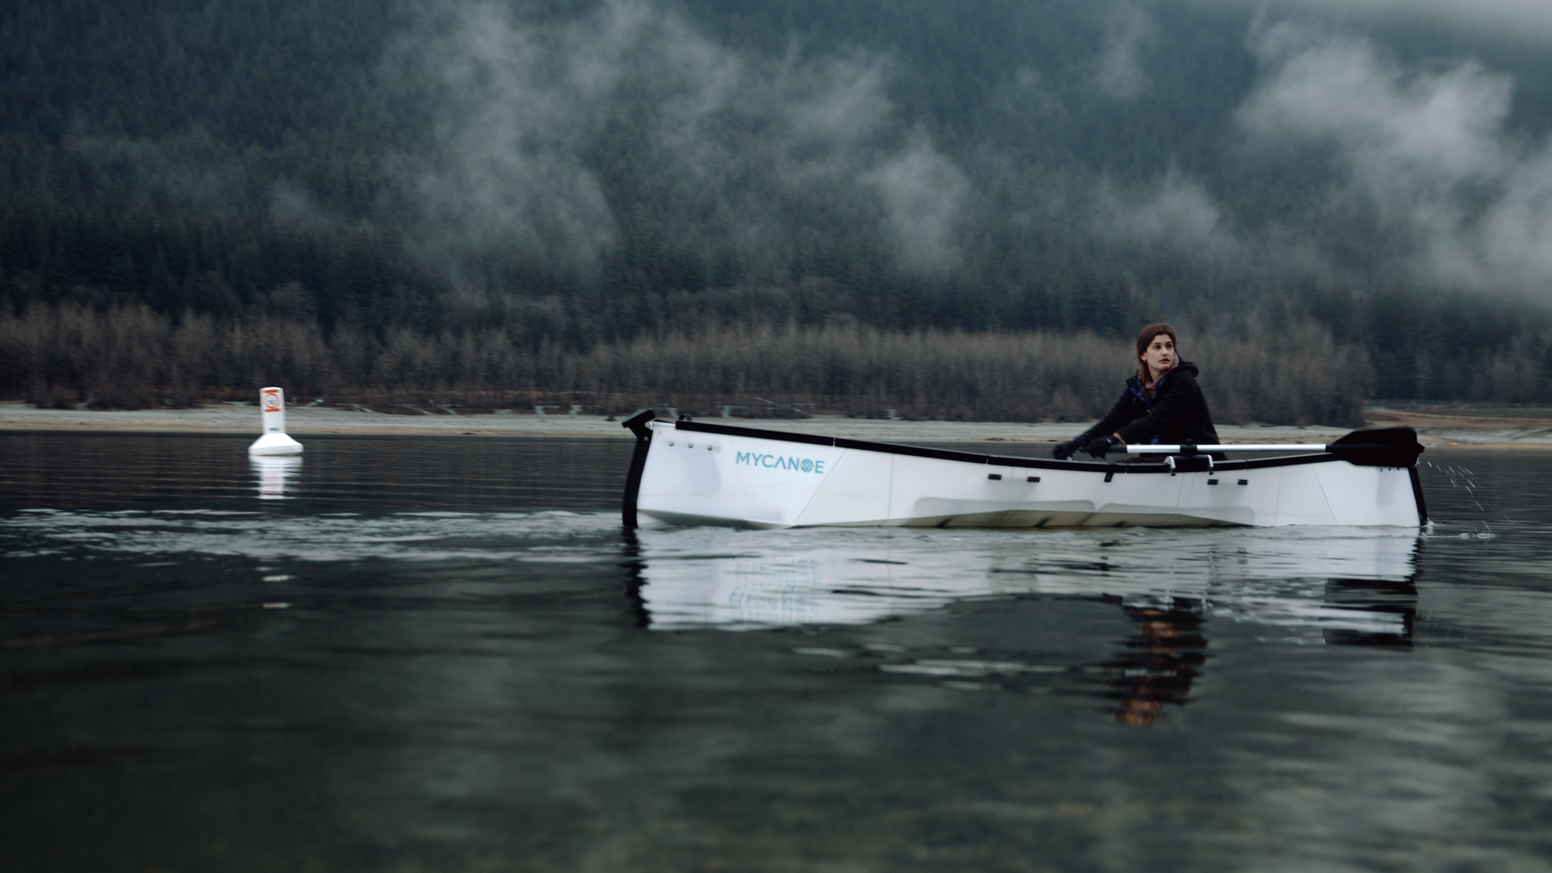 For the ultimate paddling experience. From carrying case to launch in 5 minutes!